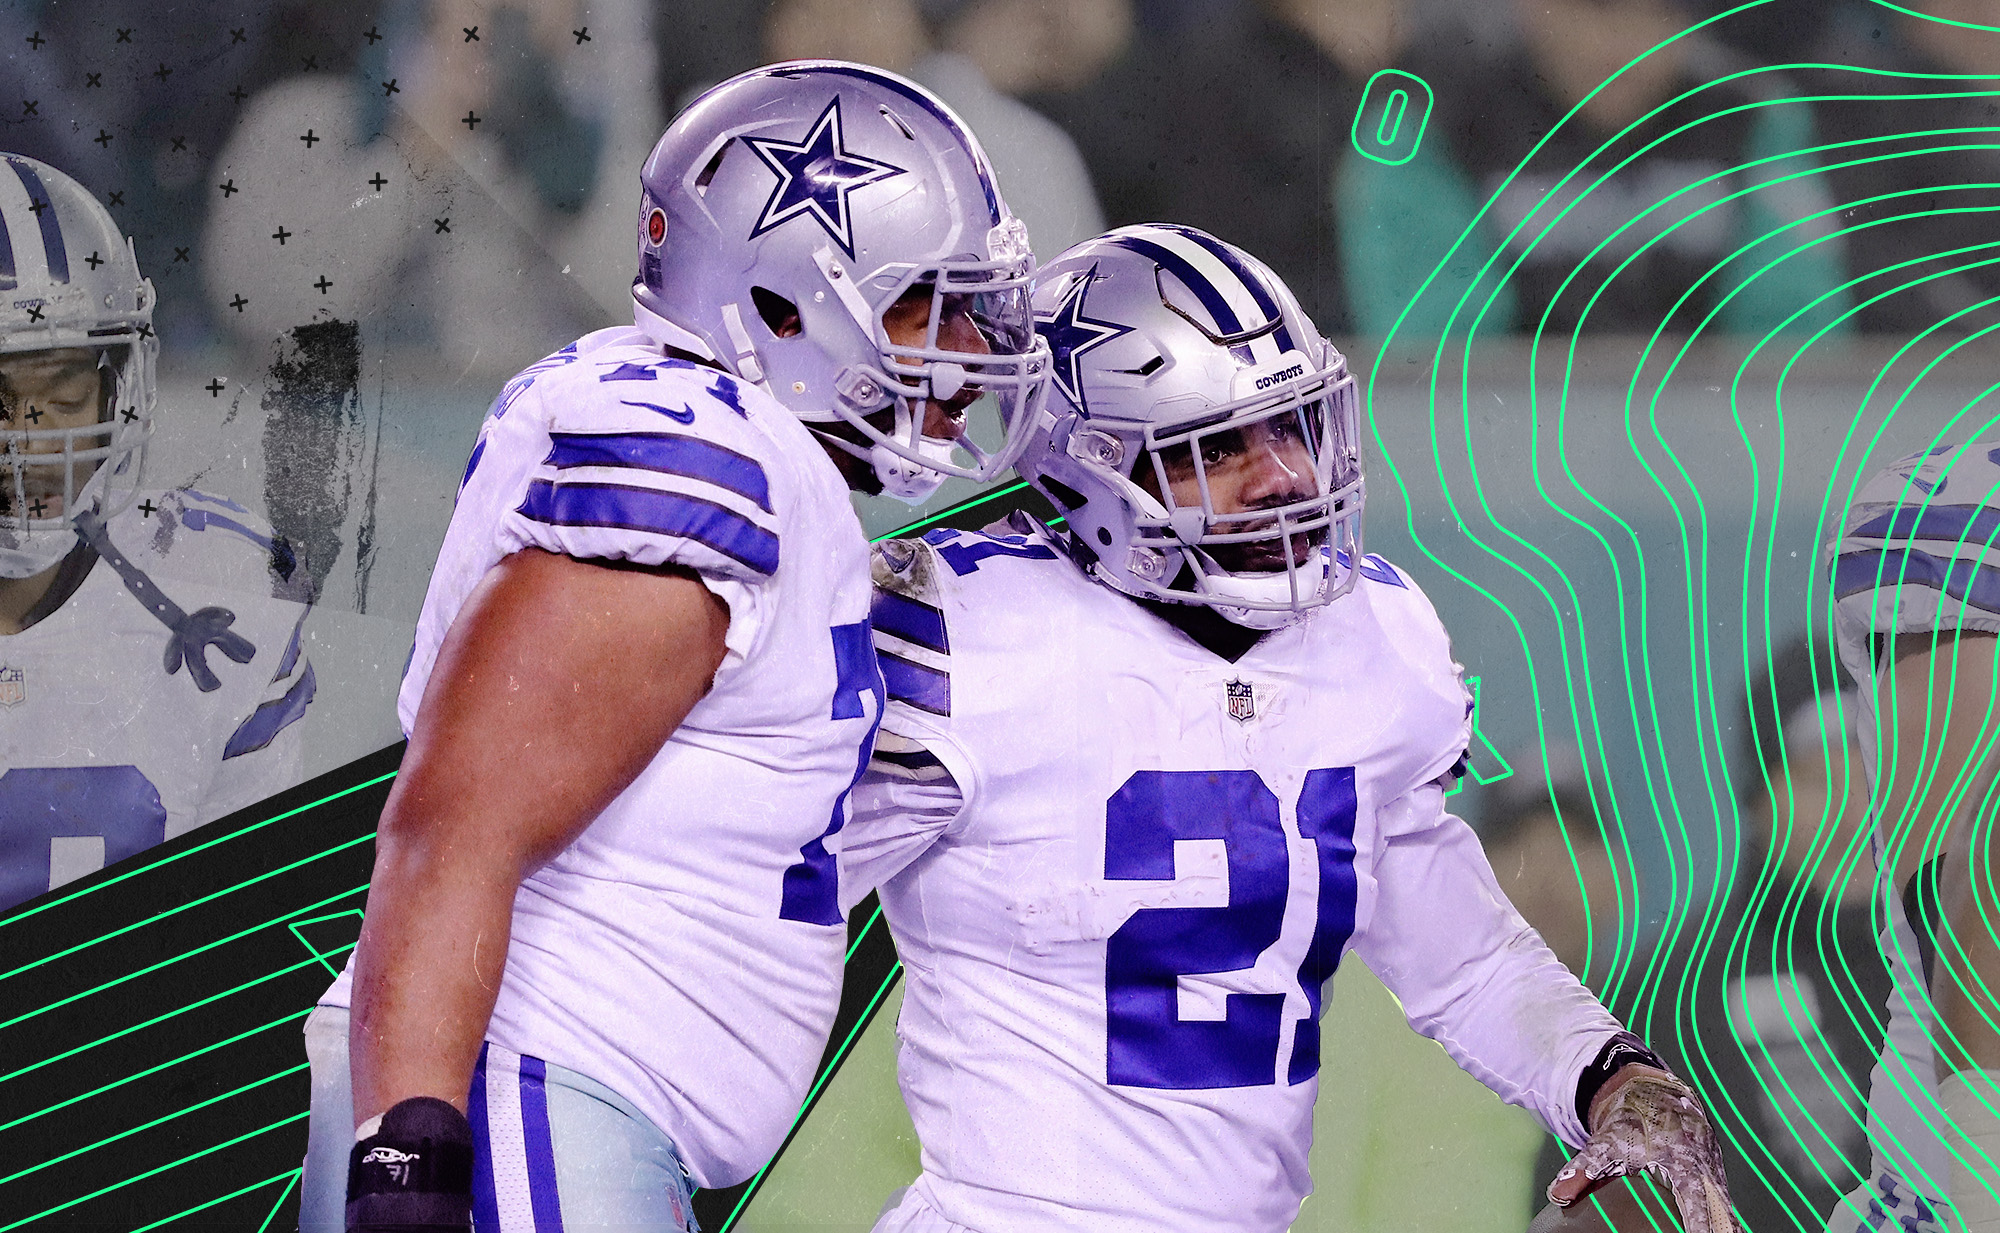 The Cowboys are betting big money their offense will finally reach its potential